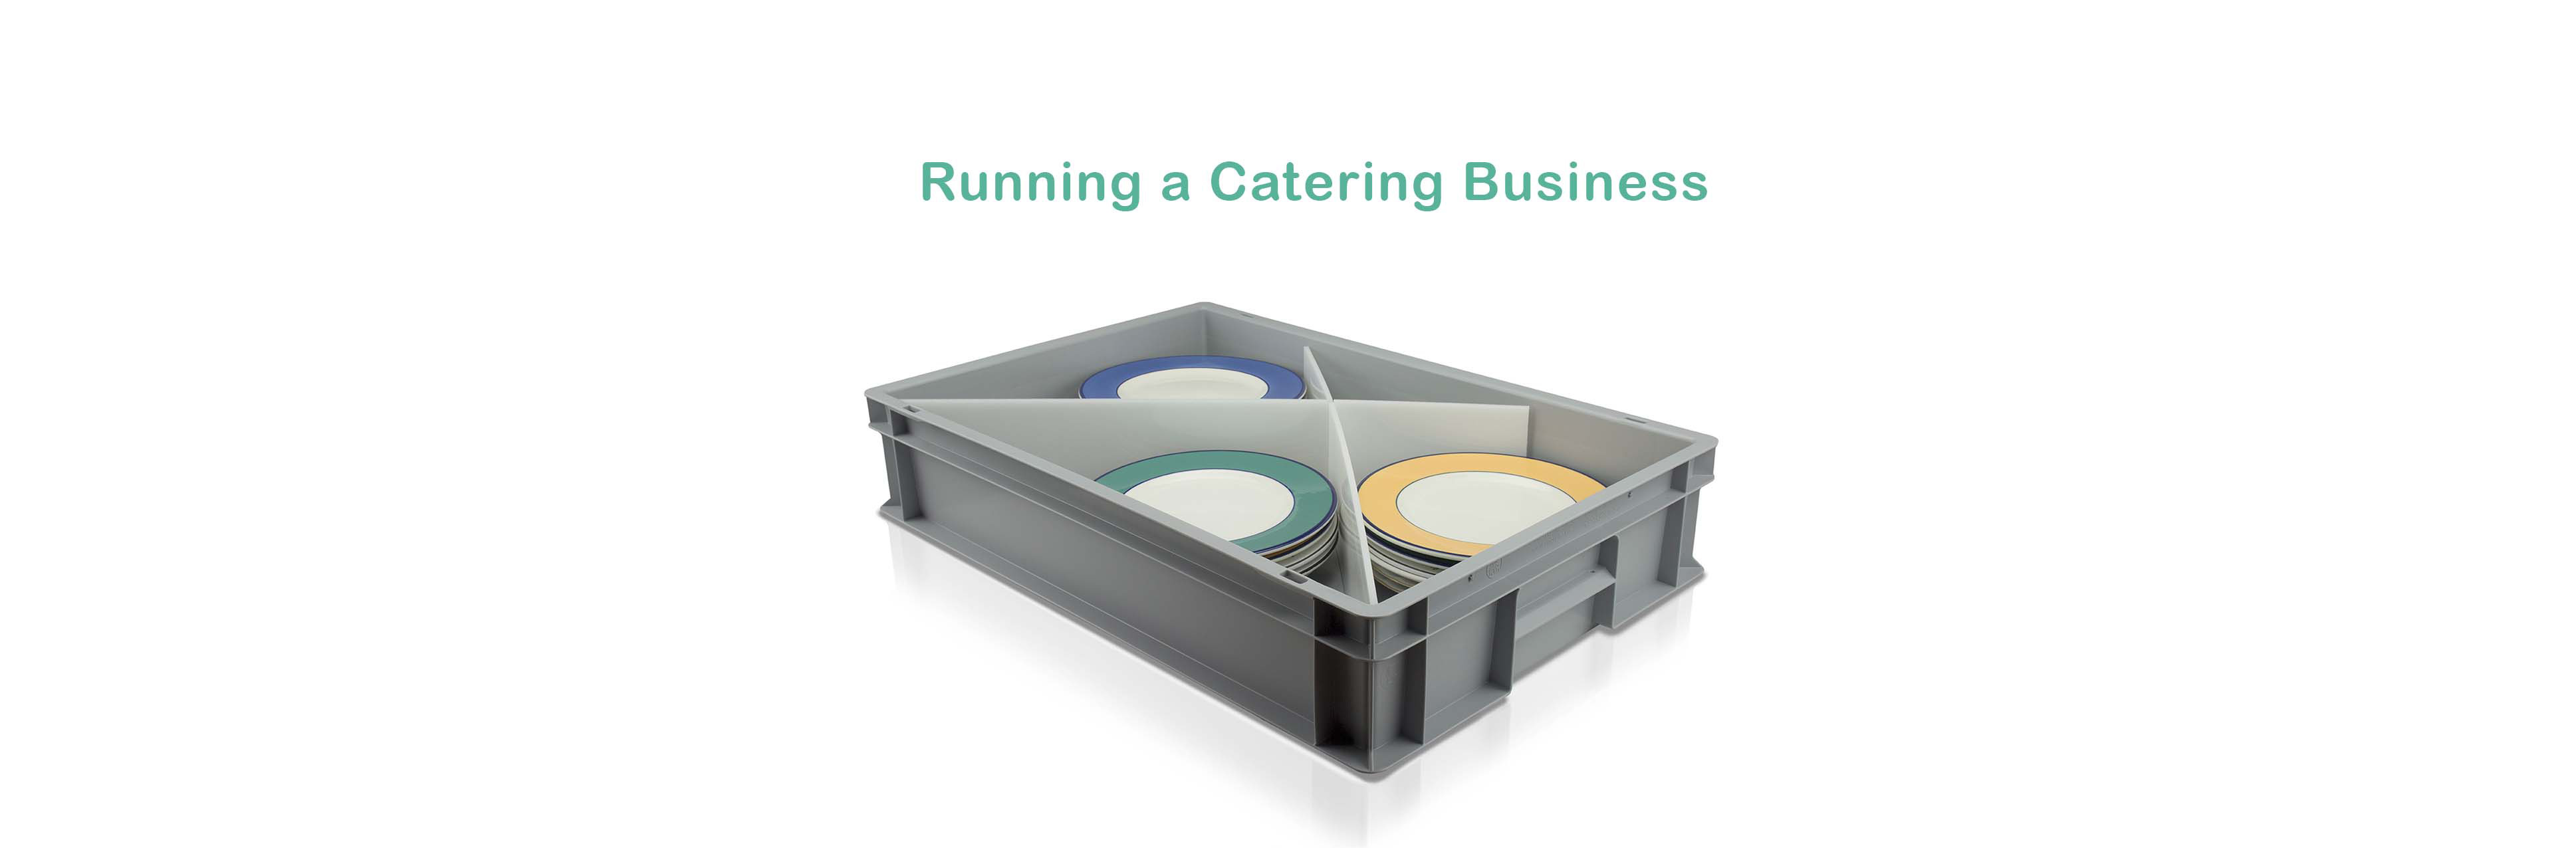 When You Run A Catering Business You Need To Take Care Of Your Ware